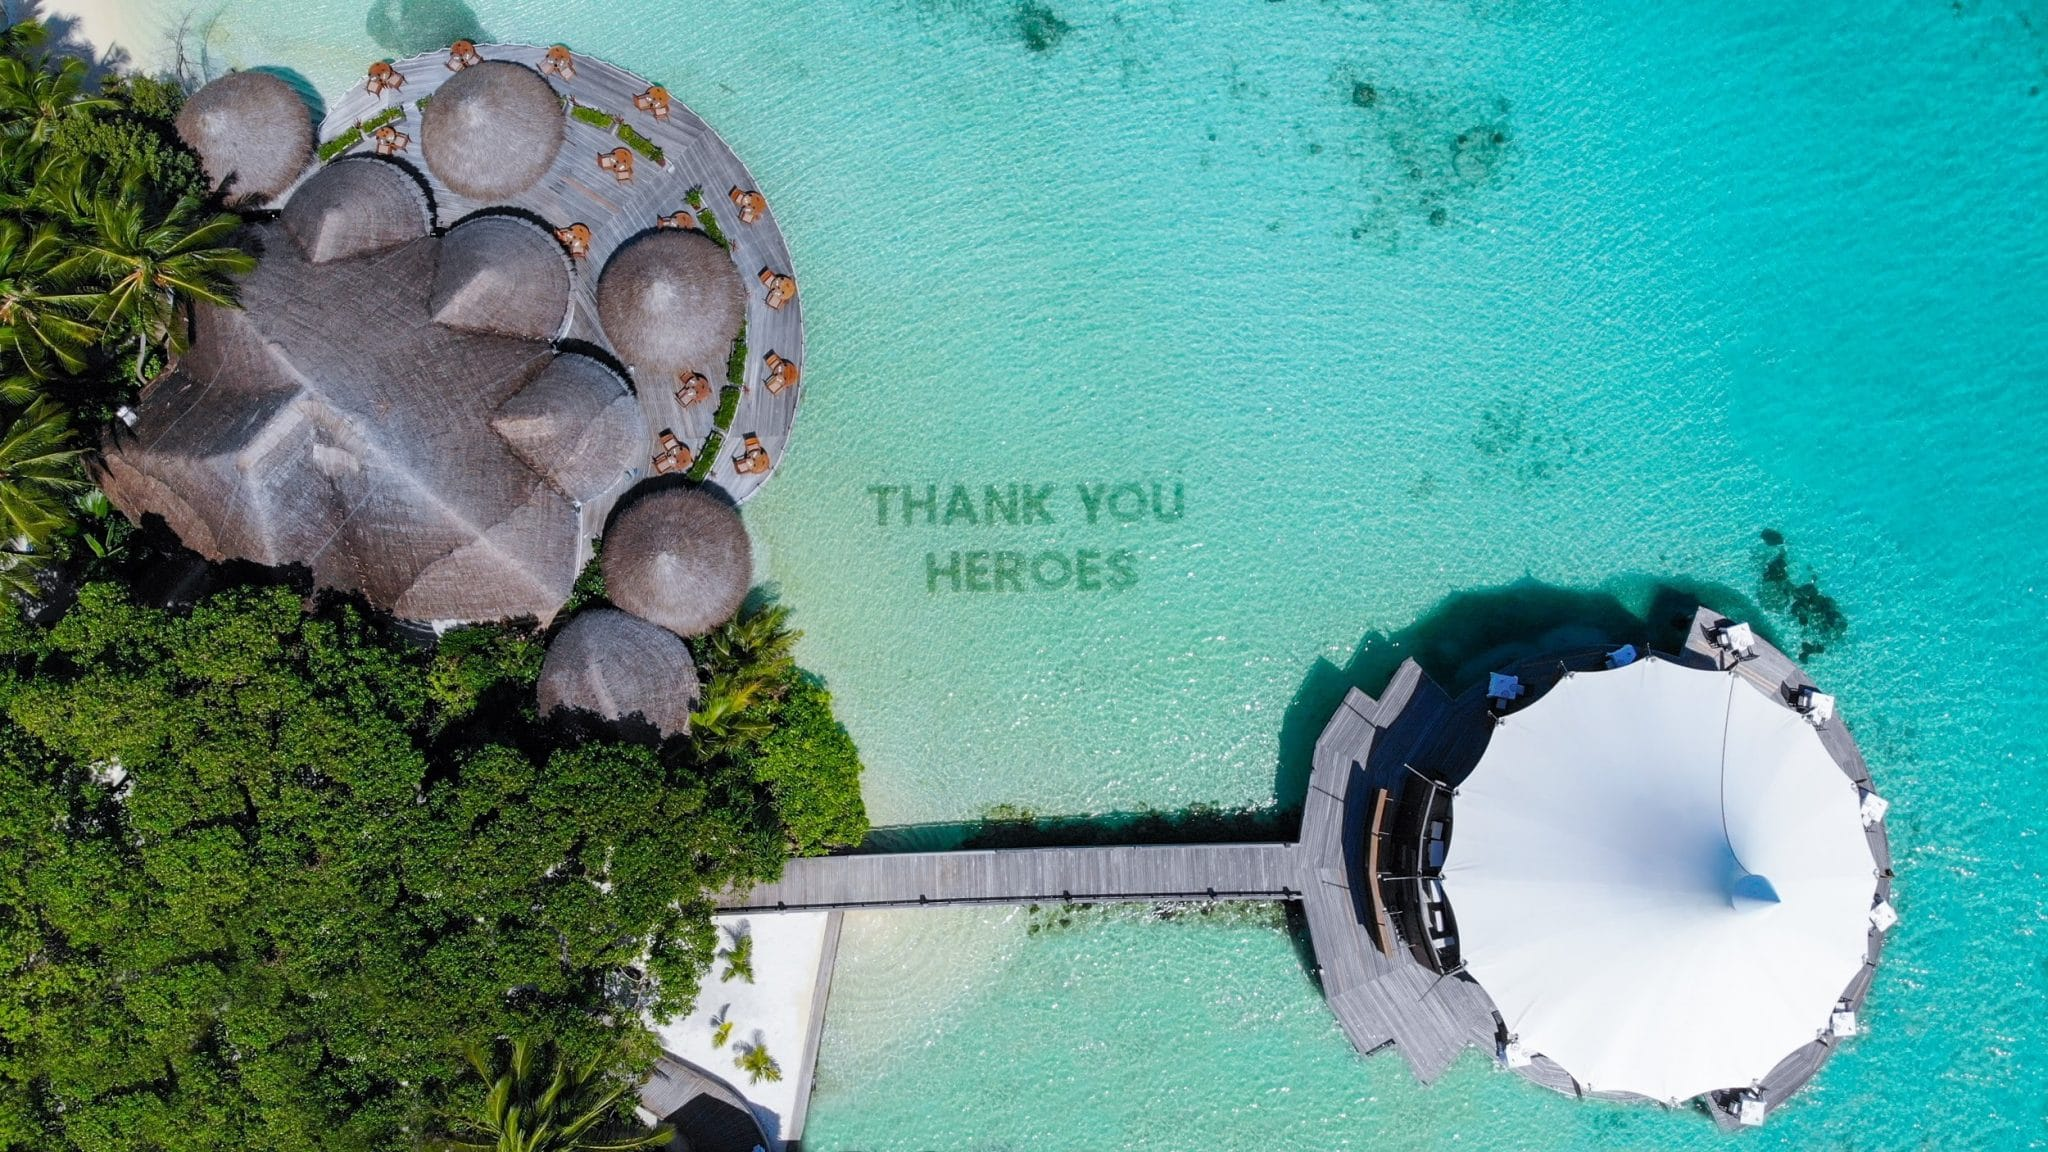 Baros Maldives Installs Permanent Coral Tribute to COVID-19 Heroes